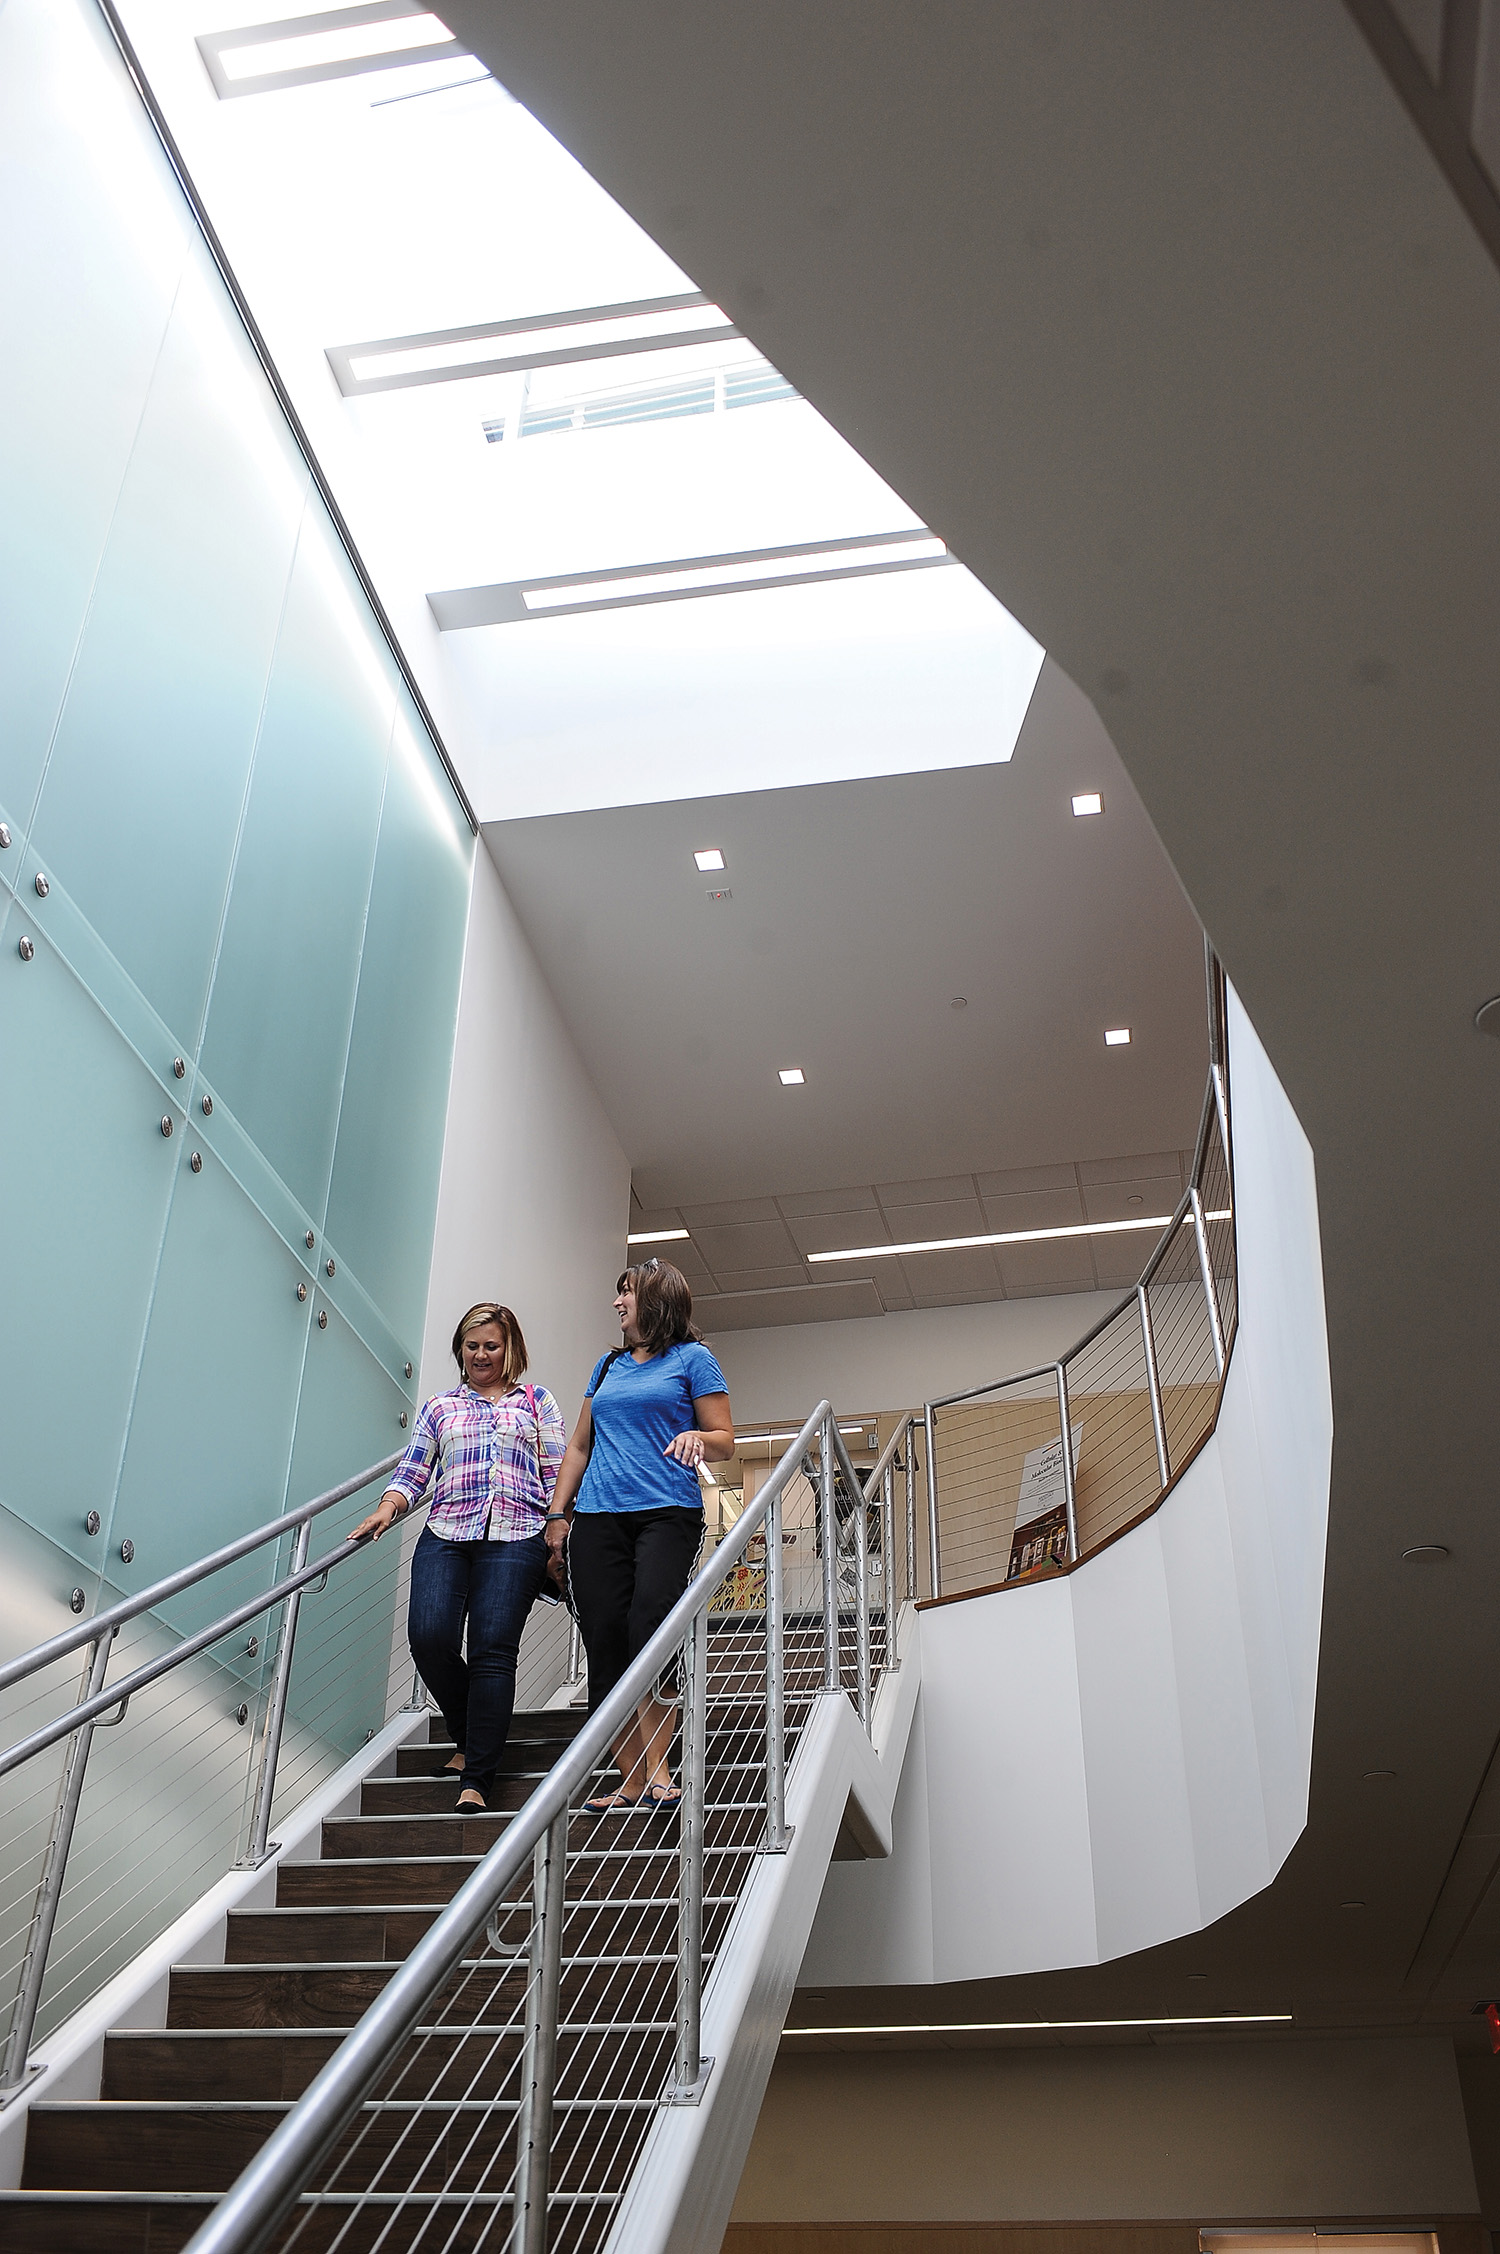 Faculty walk through the stairwell in the Science and Nursing building at Kent State University at Stark